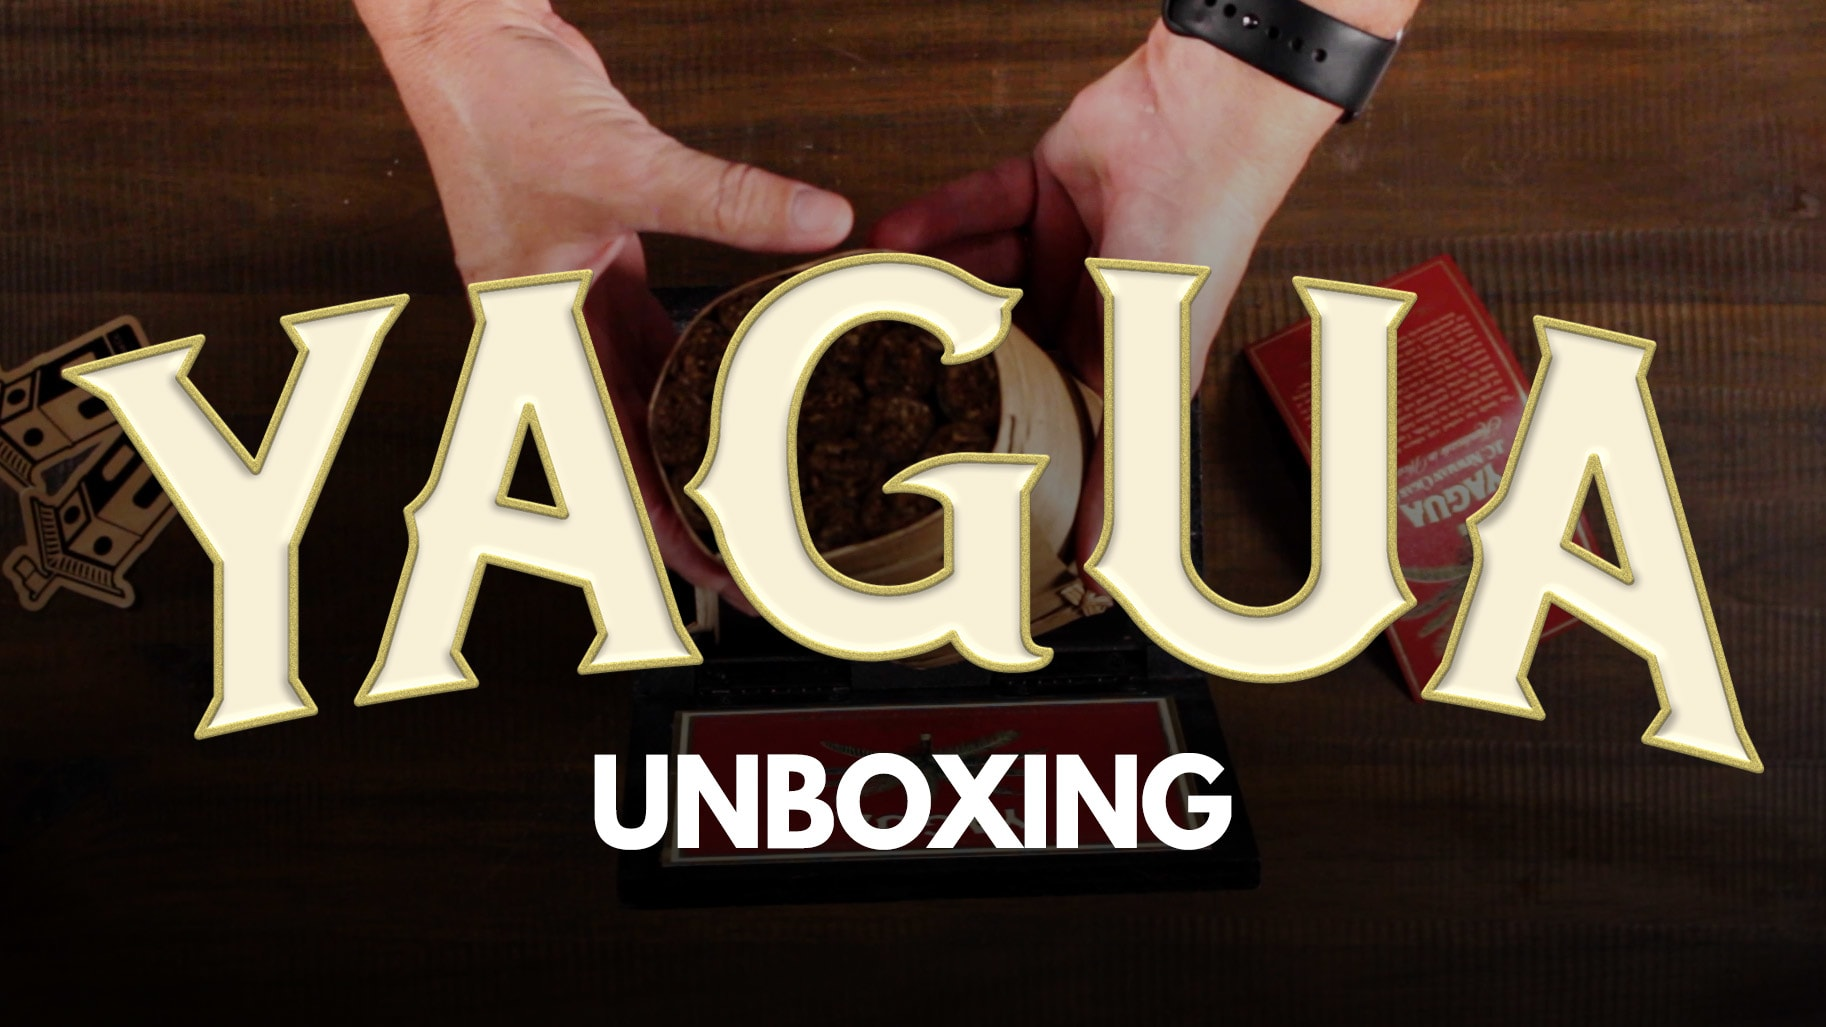 Unboxing the Yagua by J.C. Newman Featured Image